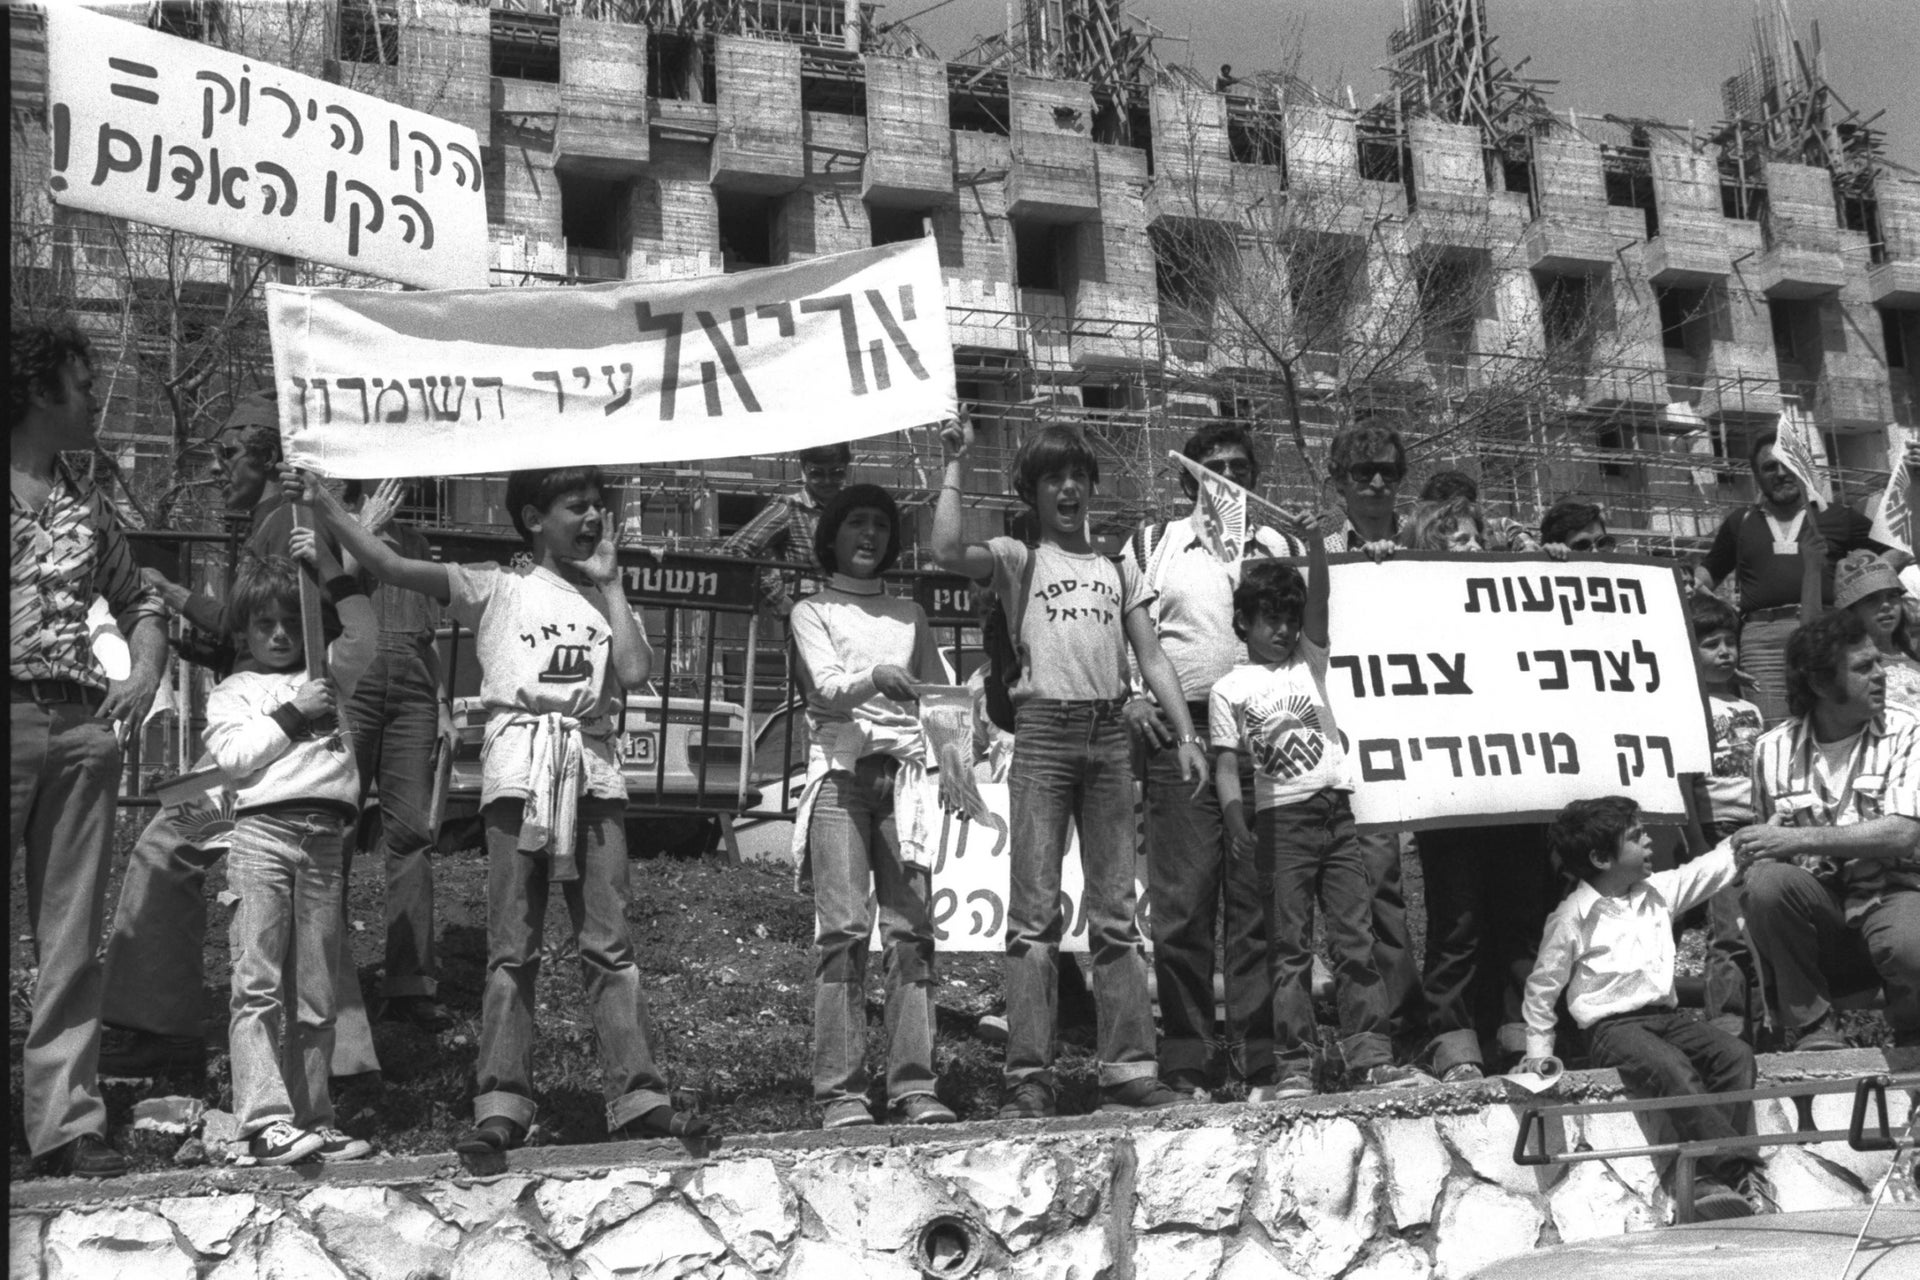 Members of Gush Emunim rally in front of the prime minister's office demanding legal status for the settlements in the West Bank, March 1980.